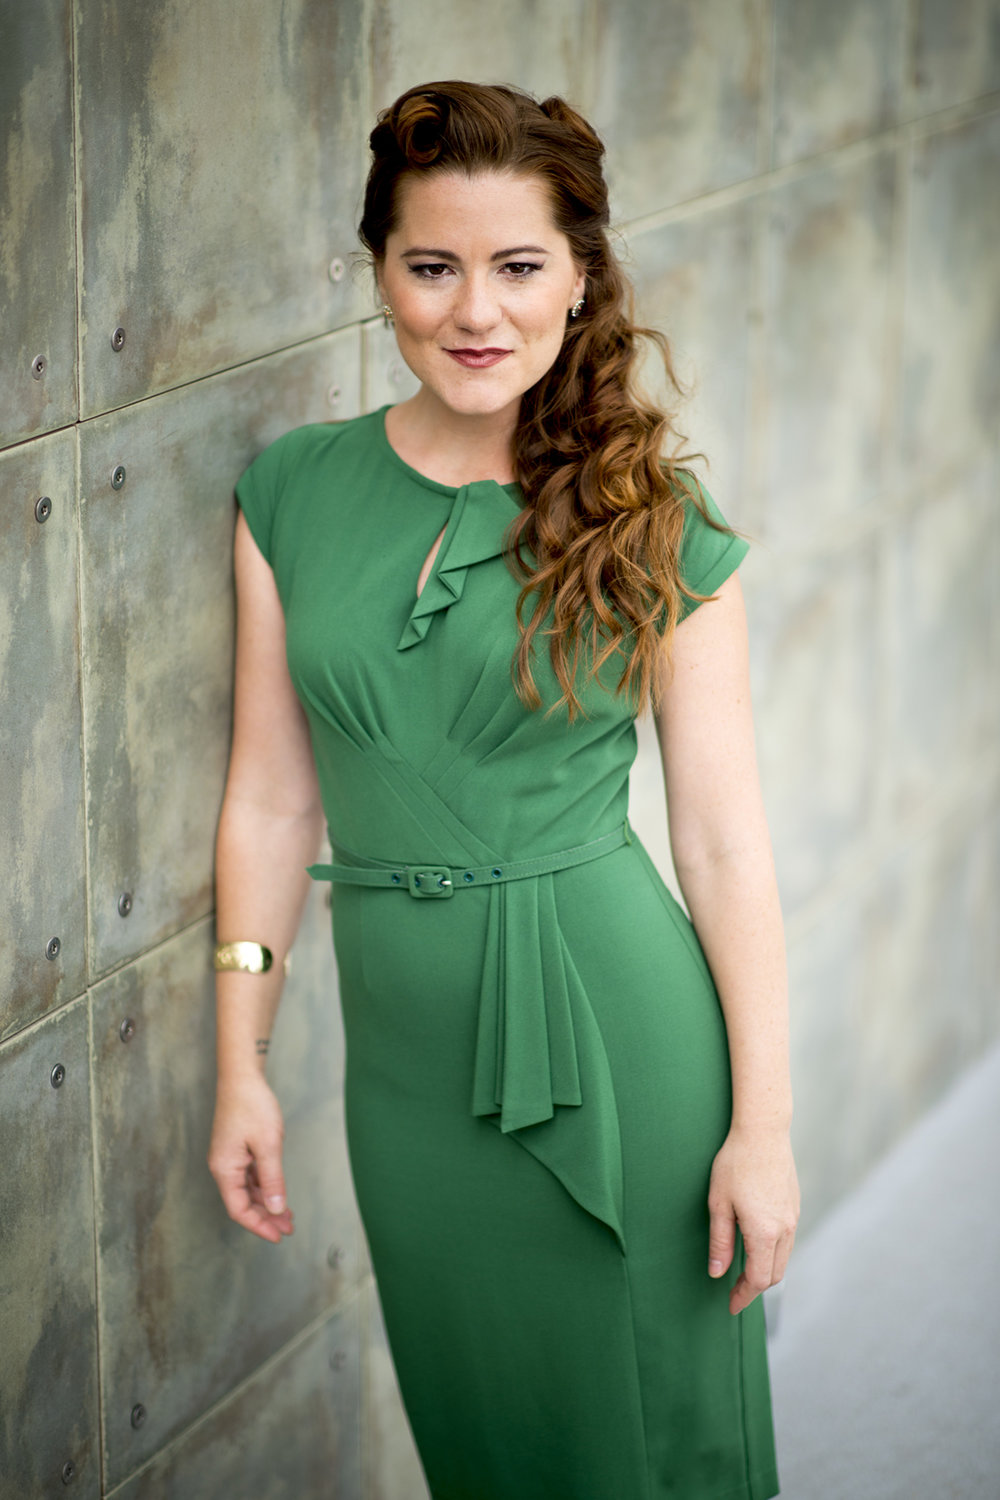 Megan Marino green dress_web.jpg